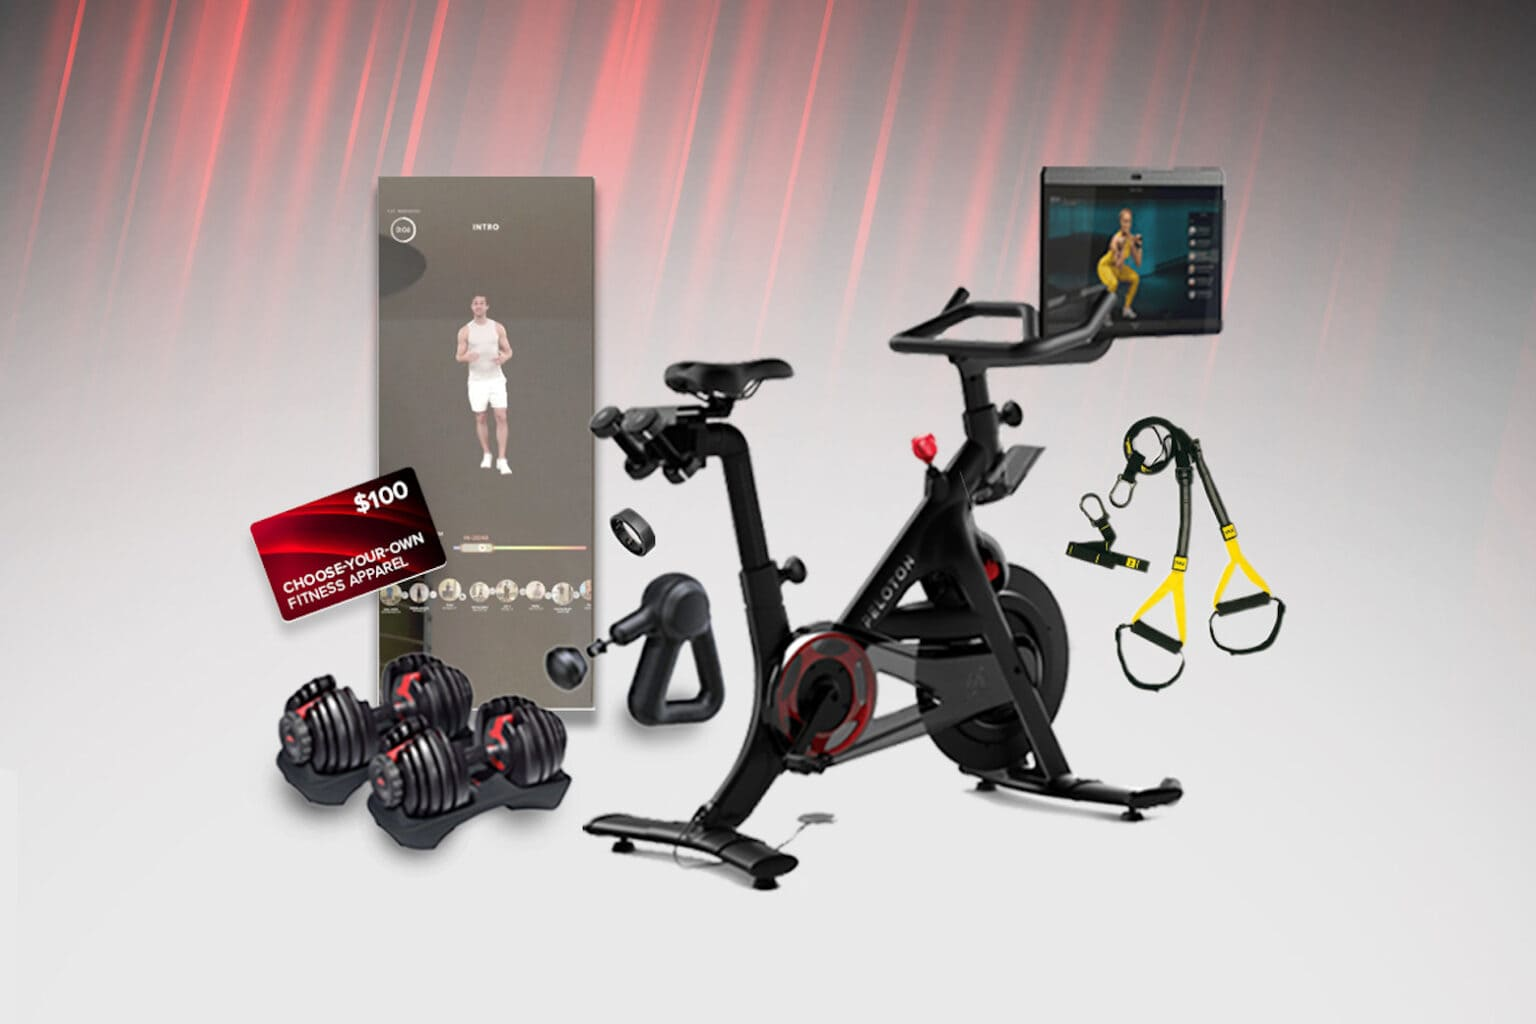 Bring the gym to your house by entering to win this Peloton giveaway